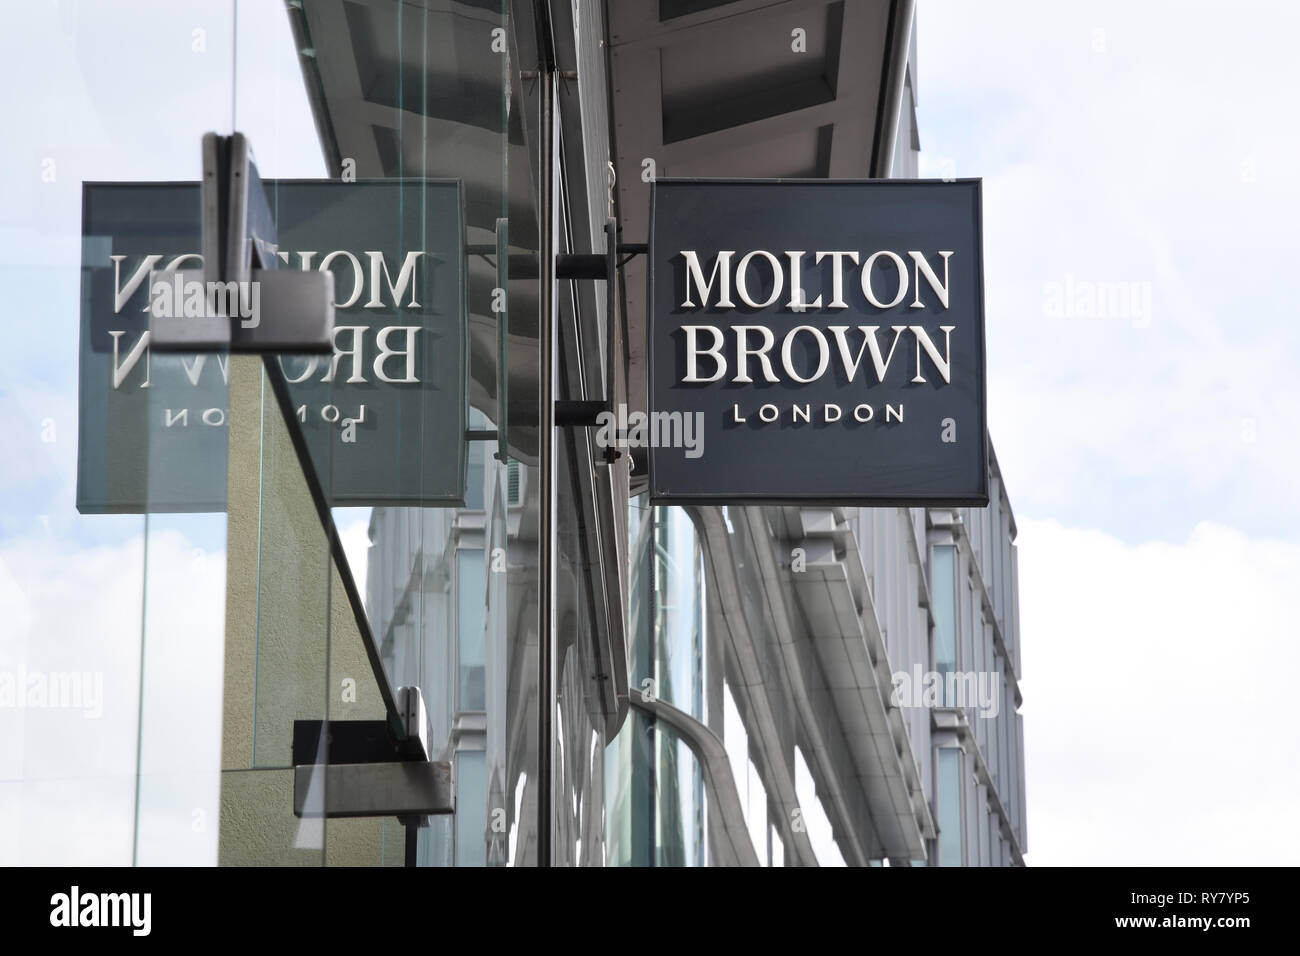 Molton Brown Sign,Victoria Street,Victoria,London.UK - Stock Image